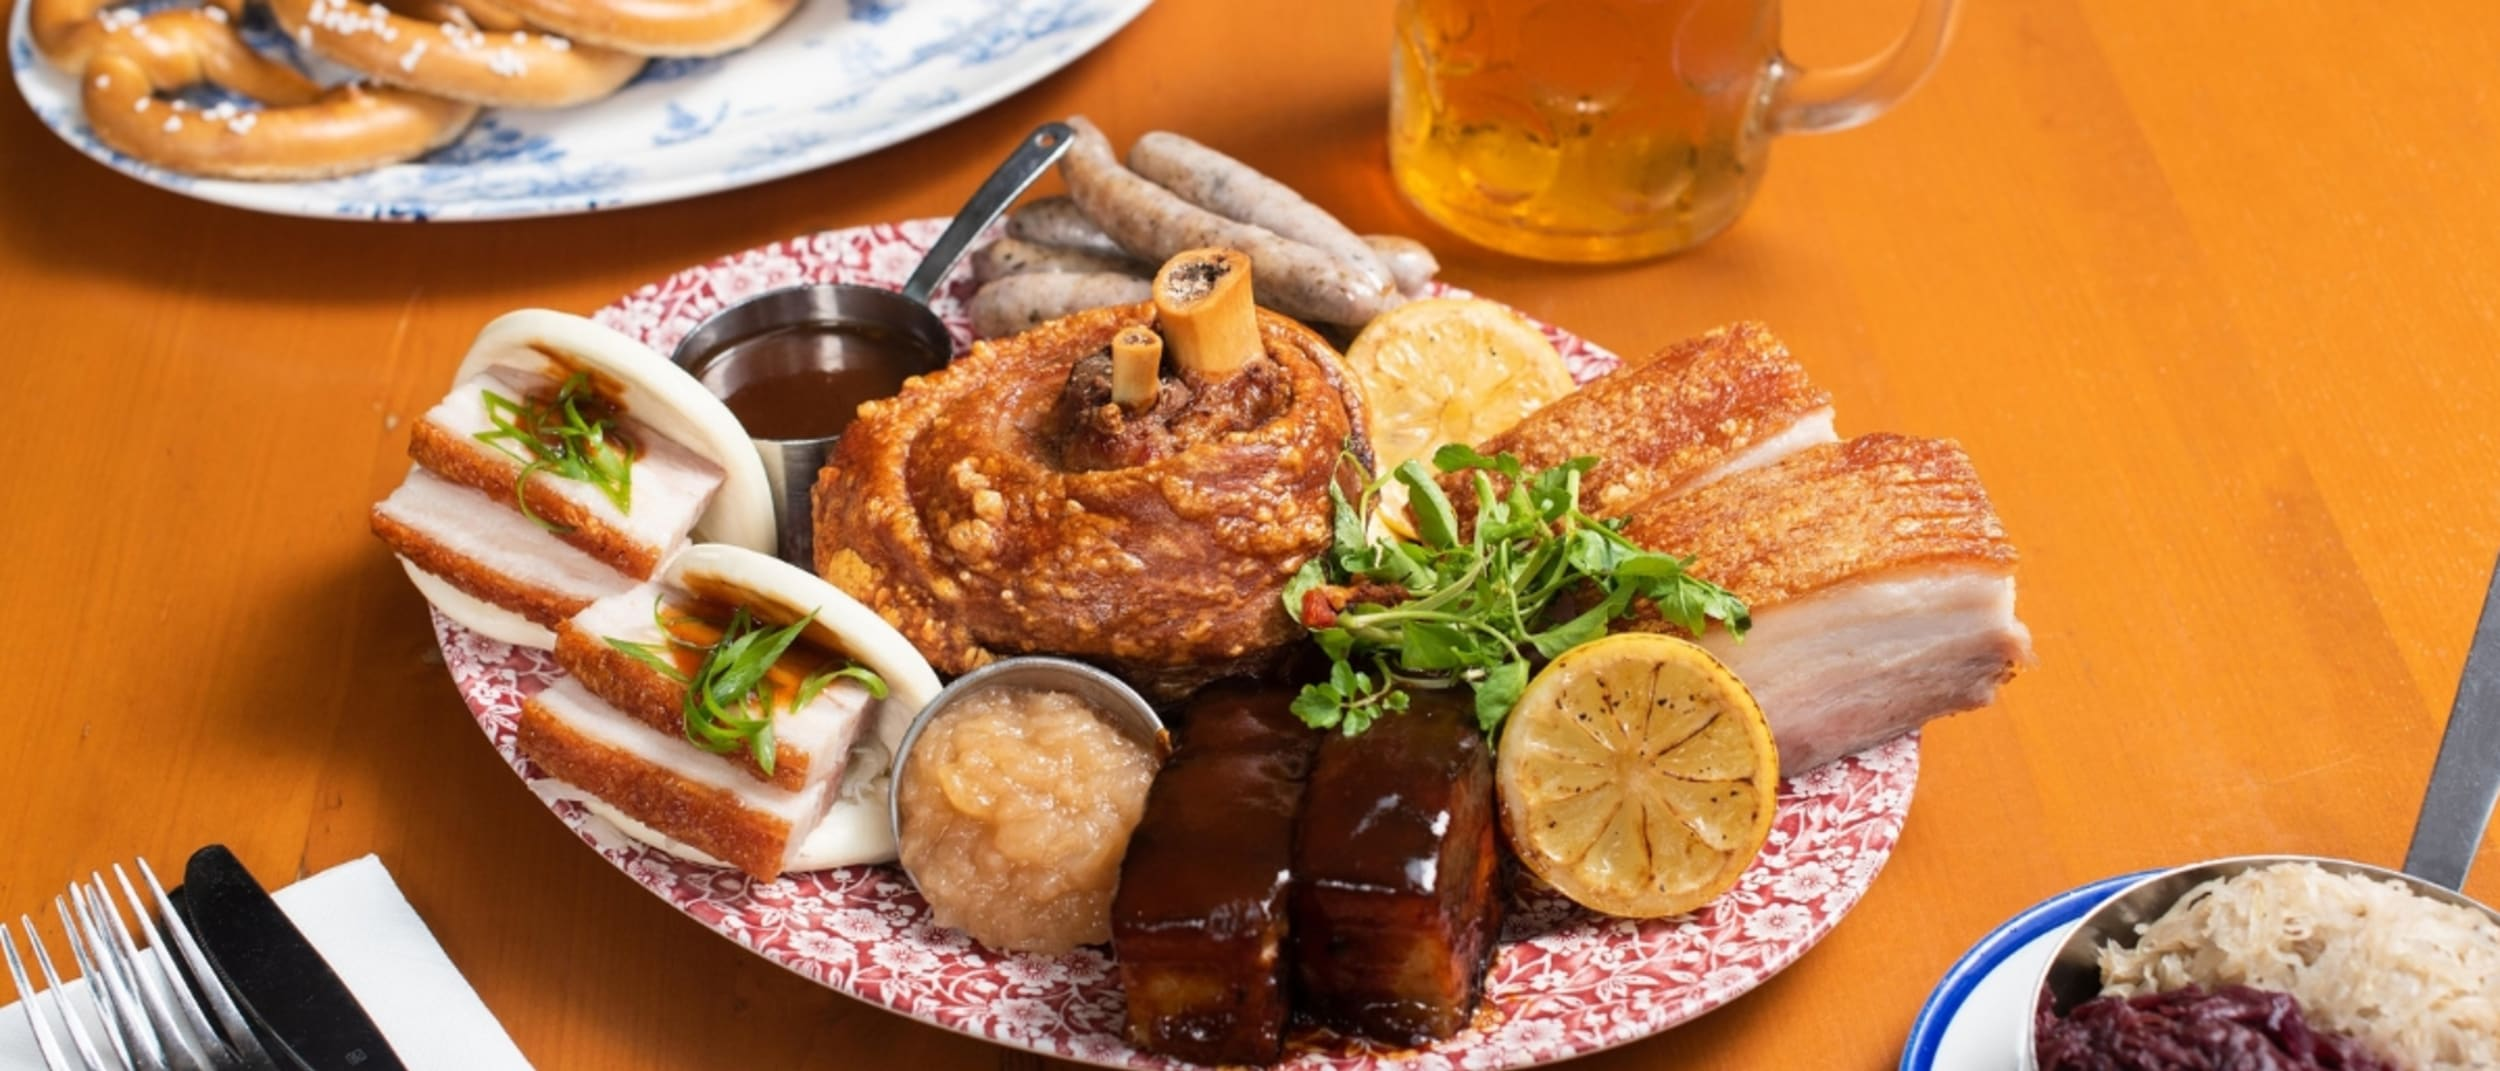 The Bavarian daily specials